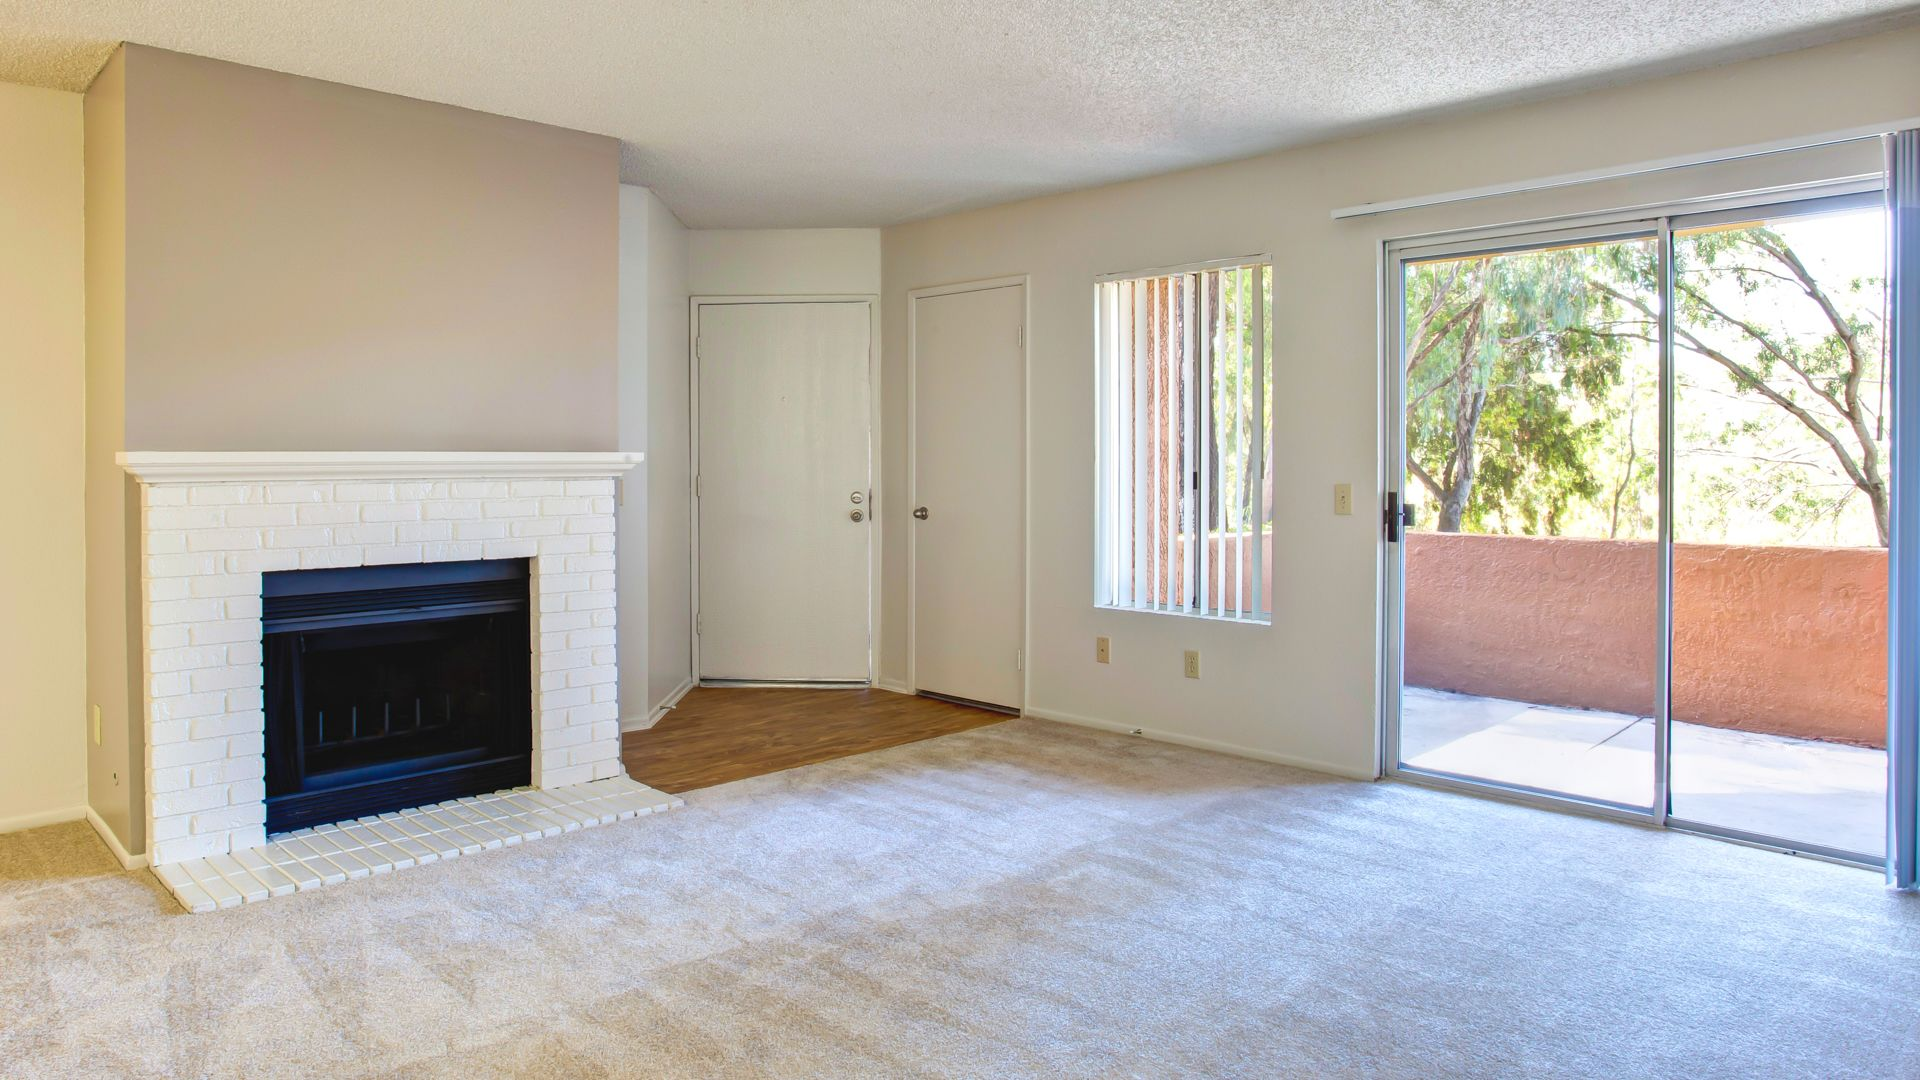 Villa Solana Apartments In Laguna Hills